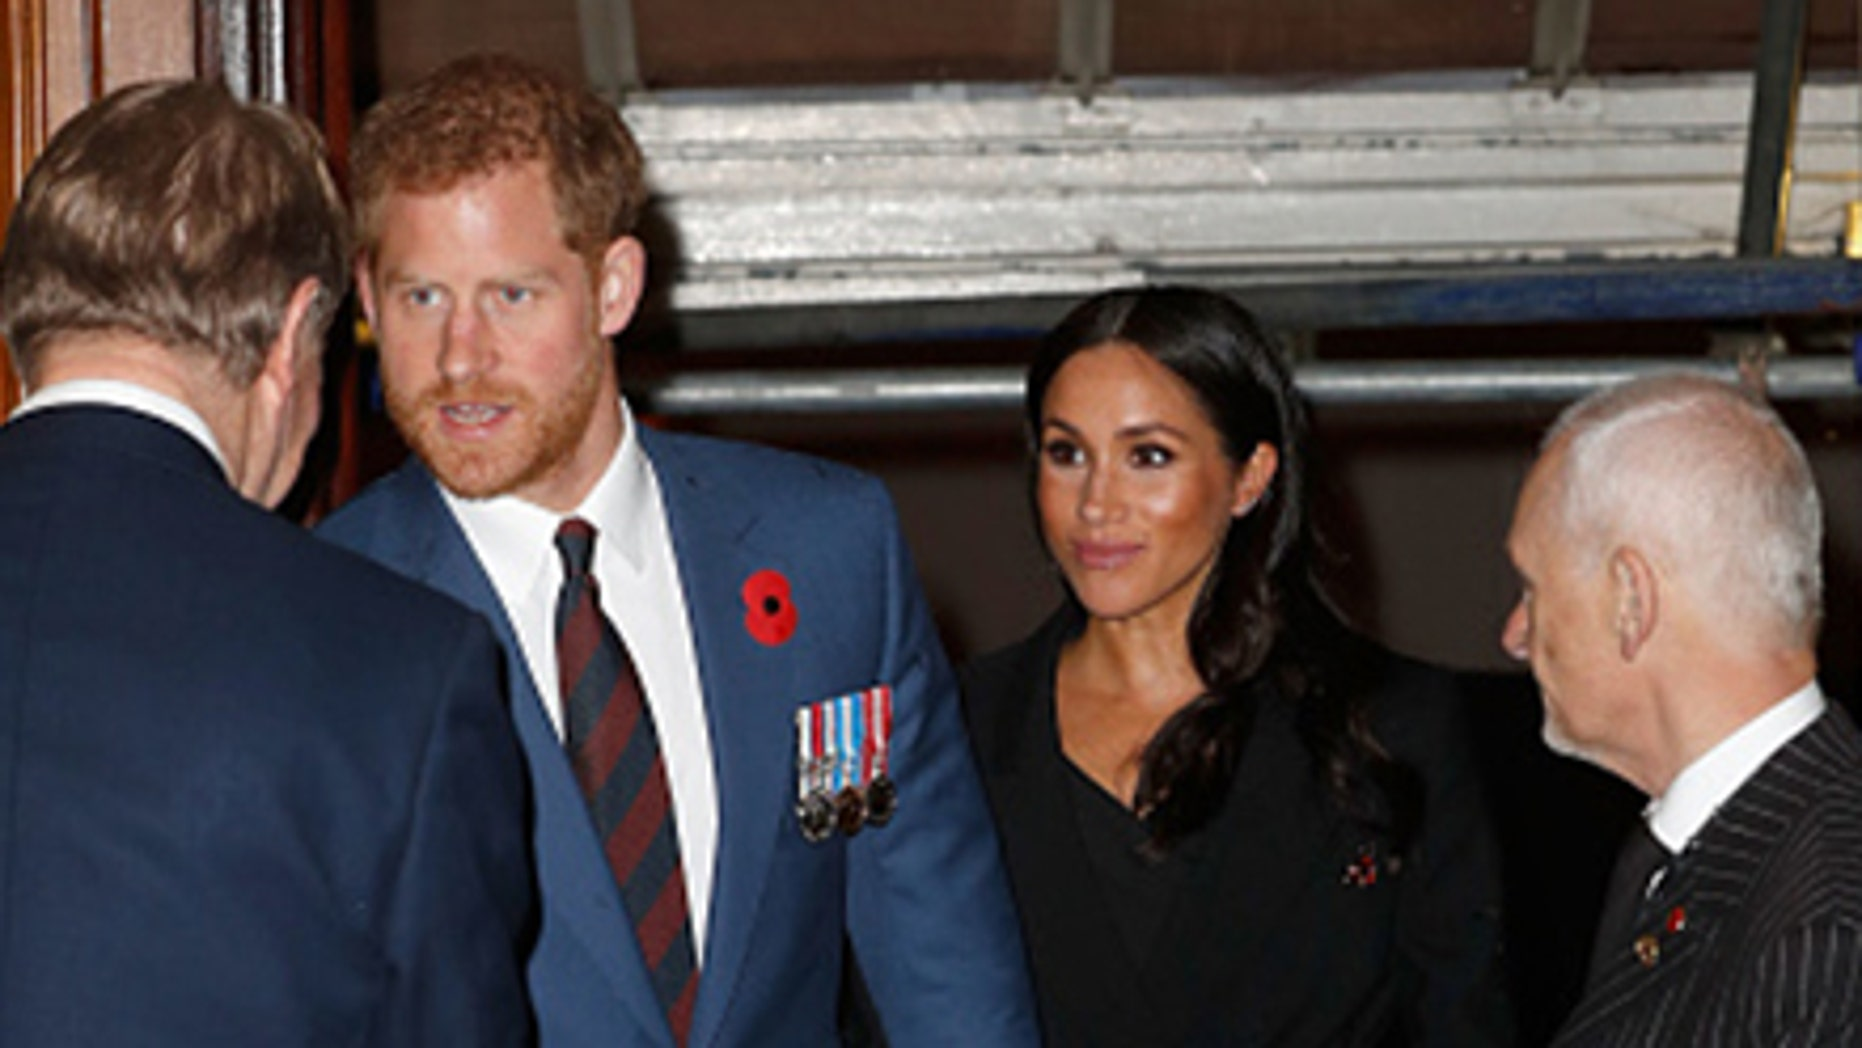 Prince Harry, Duke of Sussex and Meghan, Duchess of Sussex attend the Royal British Legion Festival of Remembrance at the Royal Albert Hall on November 10, 2018 in London, England.